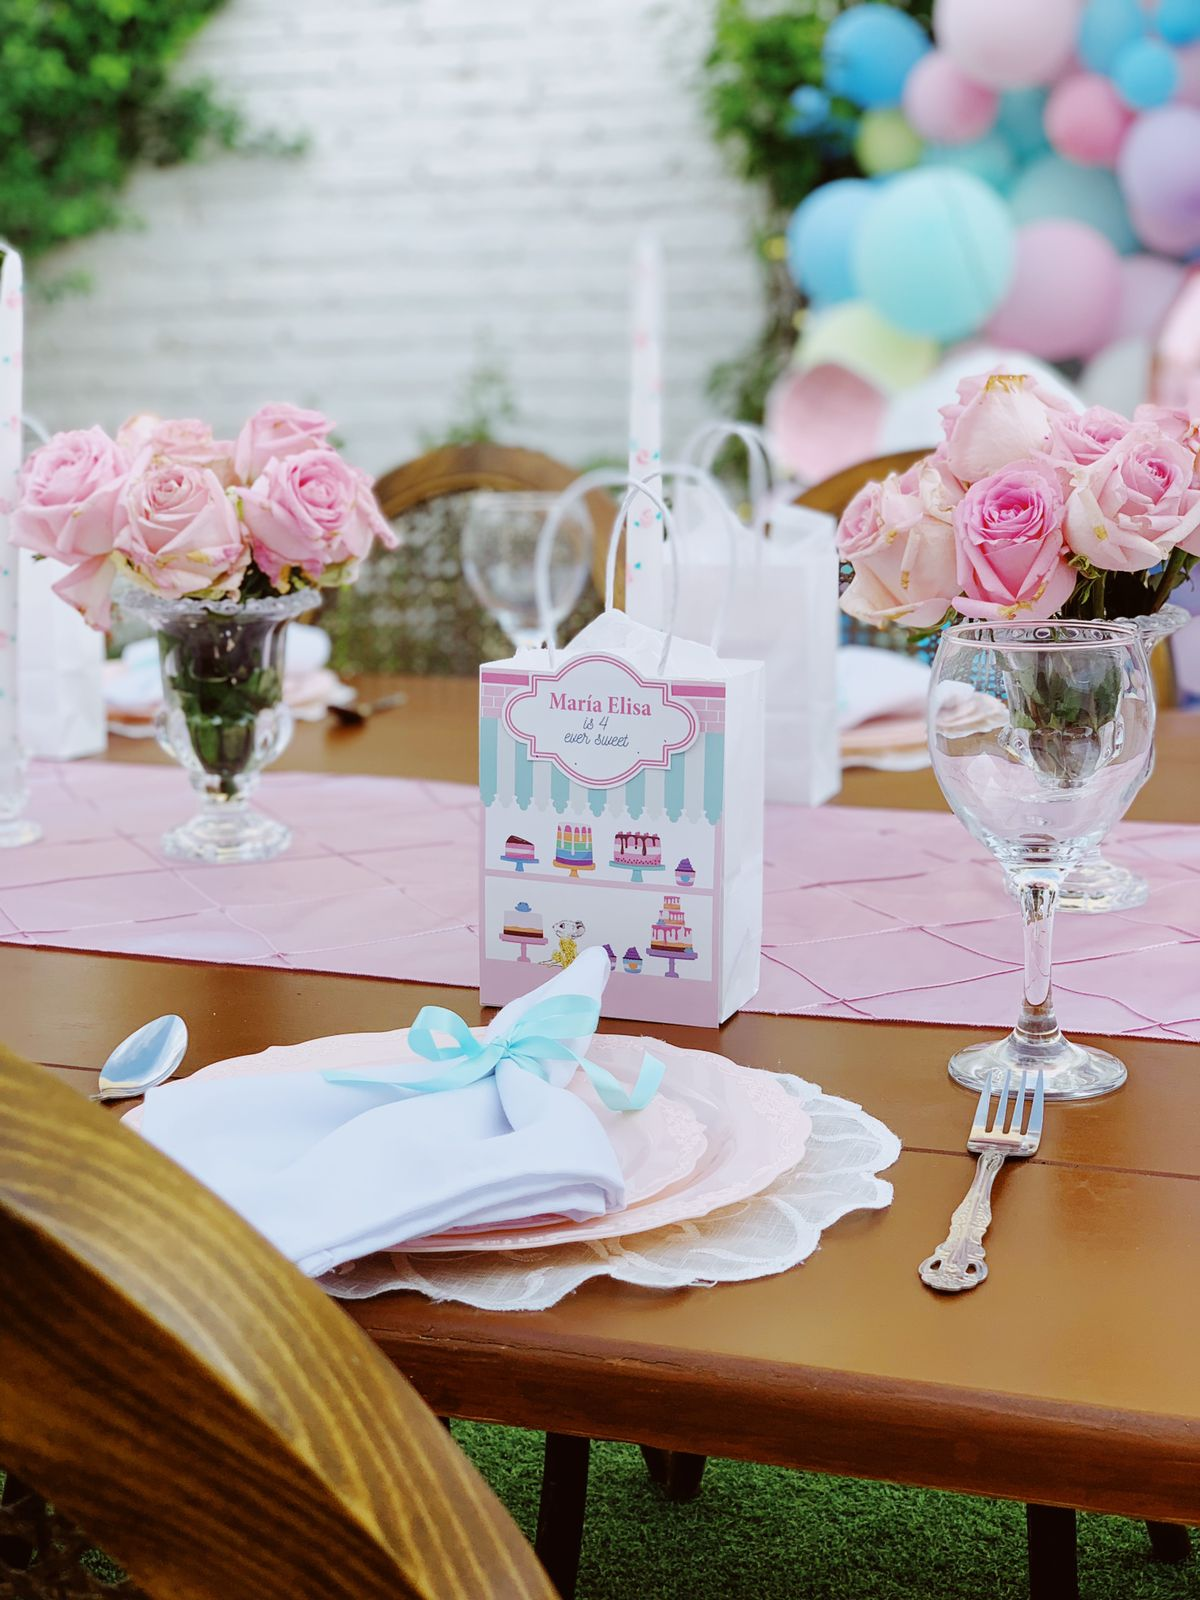 Charlotte sy Dimby and Claris the mouse in Paris party inspiration for children